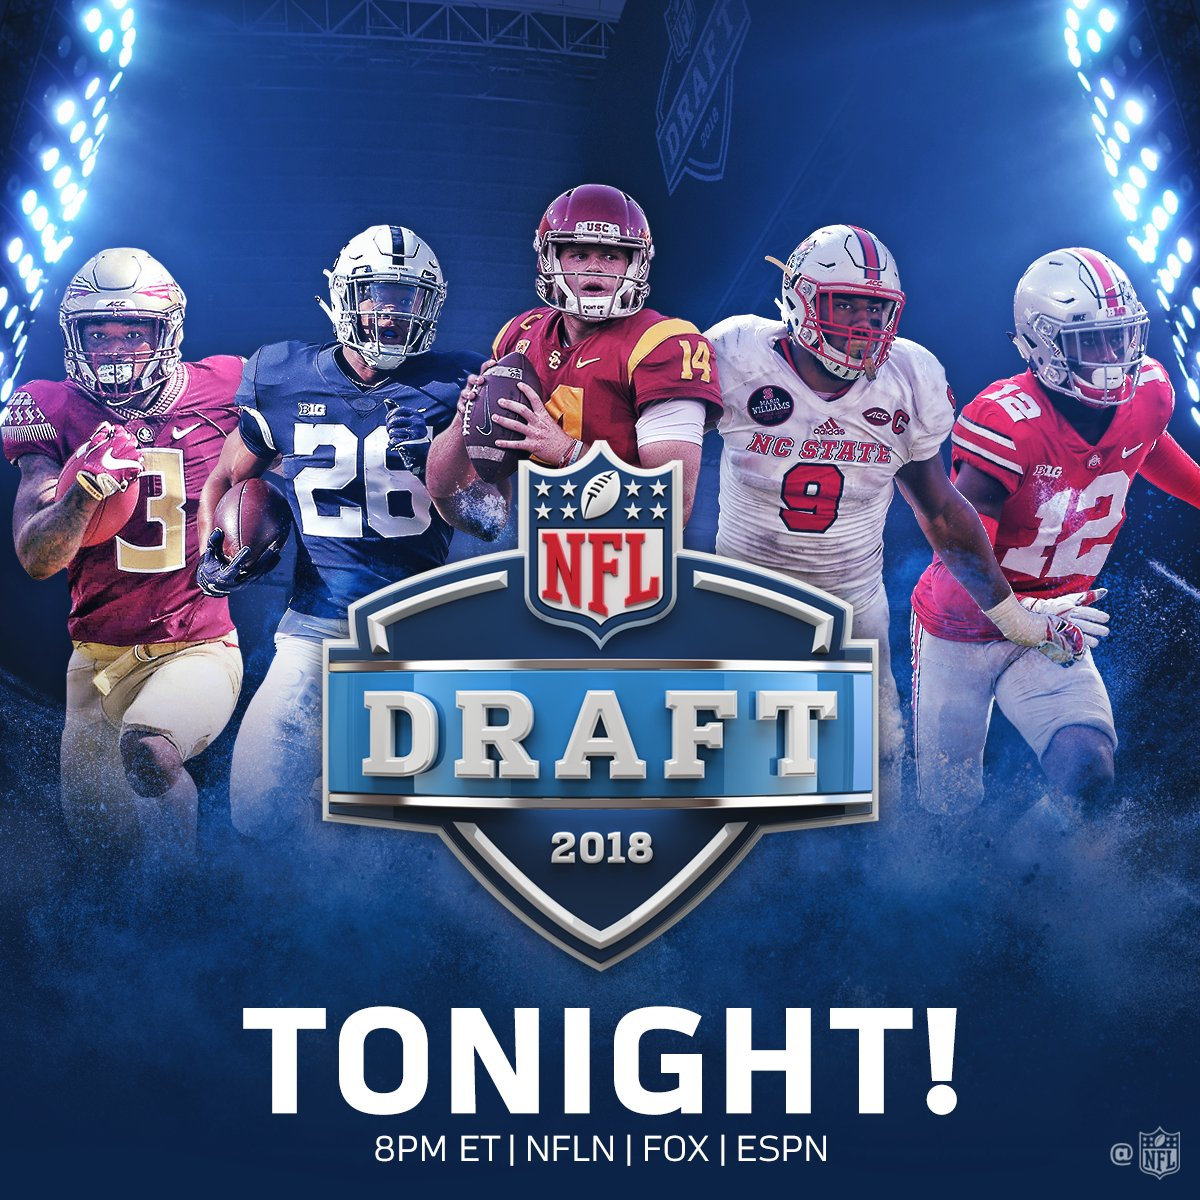 The @NFLDraft is finally here! 🎊  2018 #NFLDraft: TONIGHT at 8pm ET on NFLN/FOX/ESPN